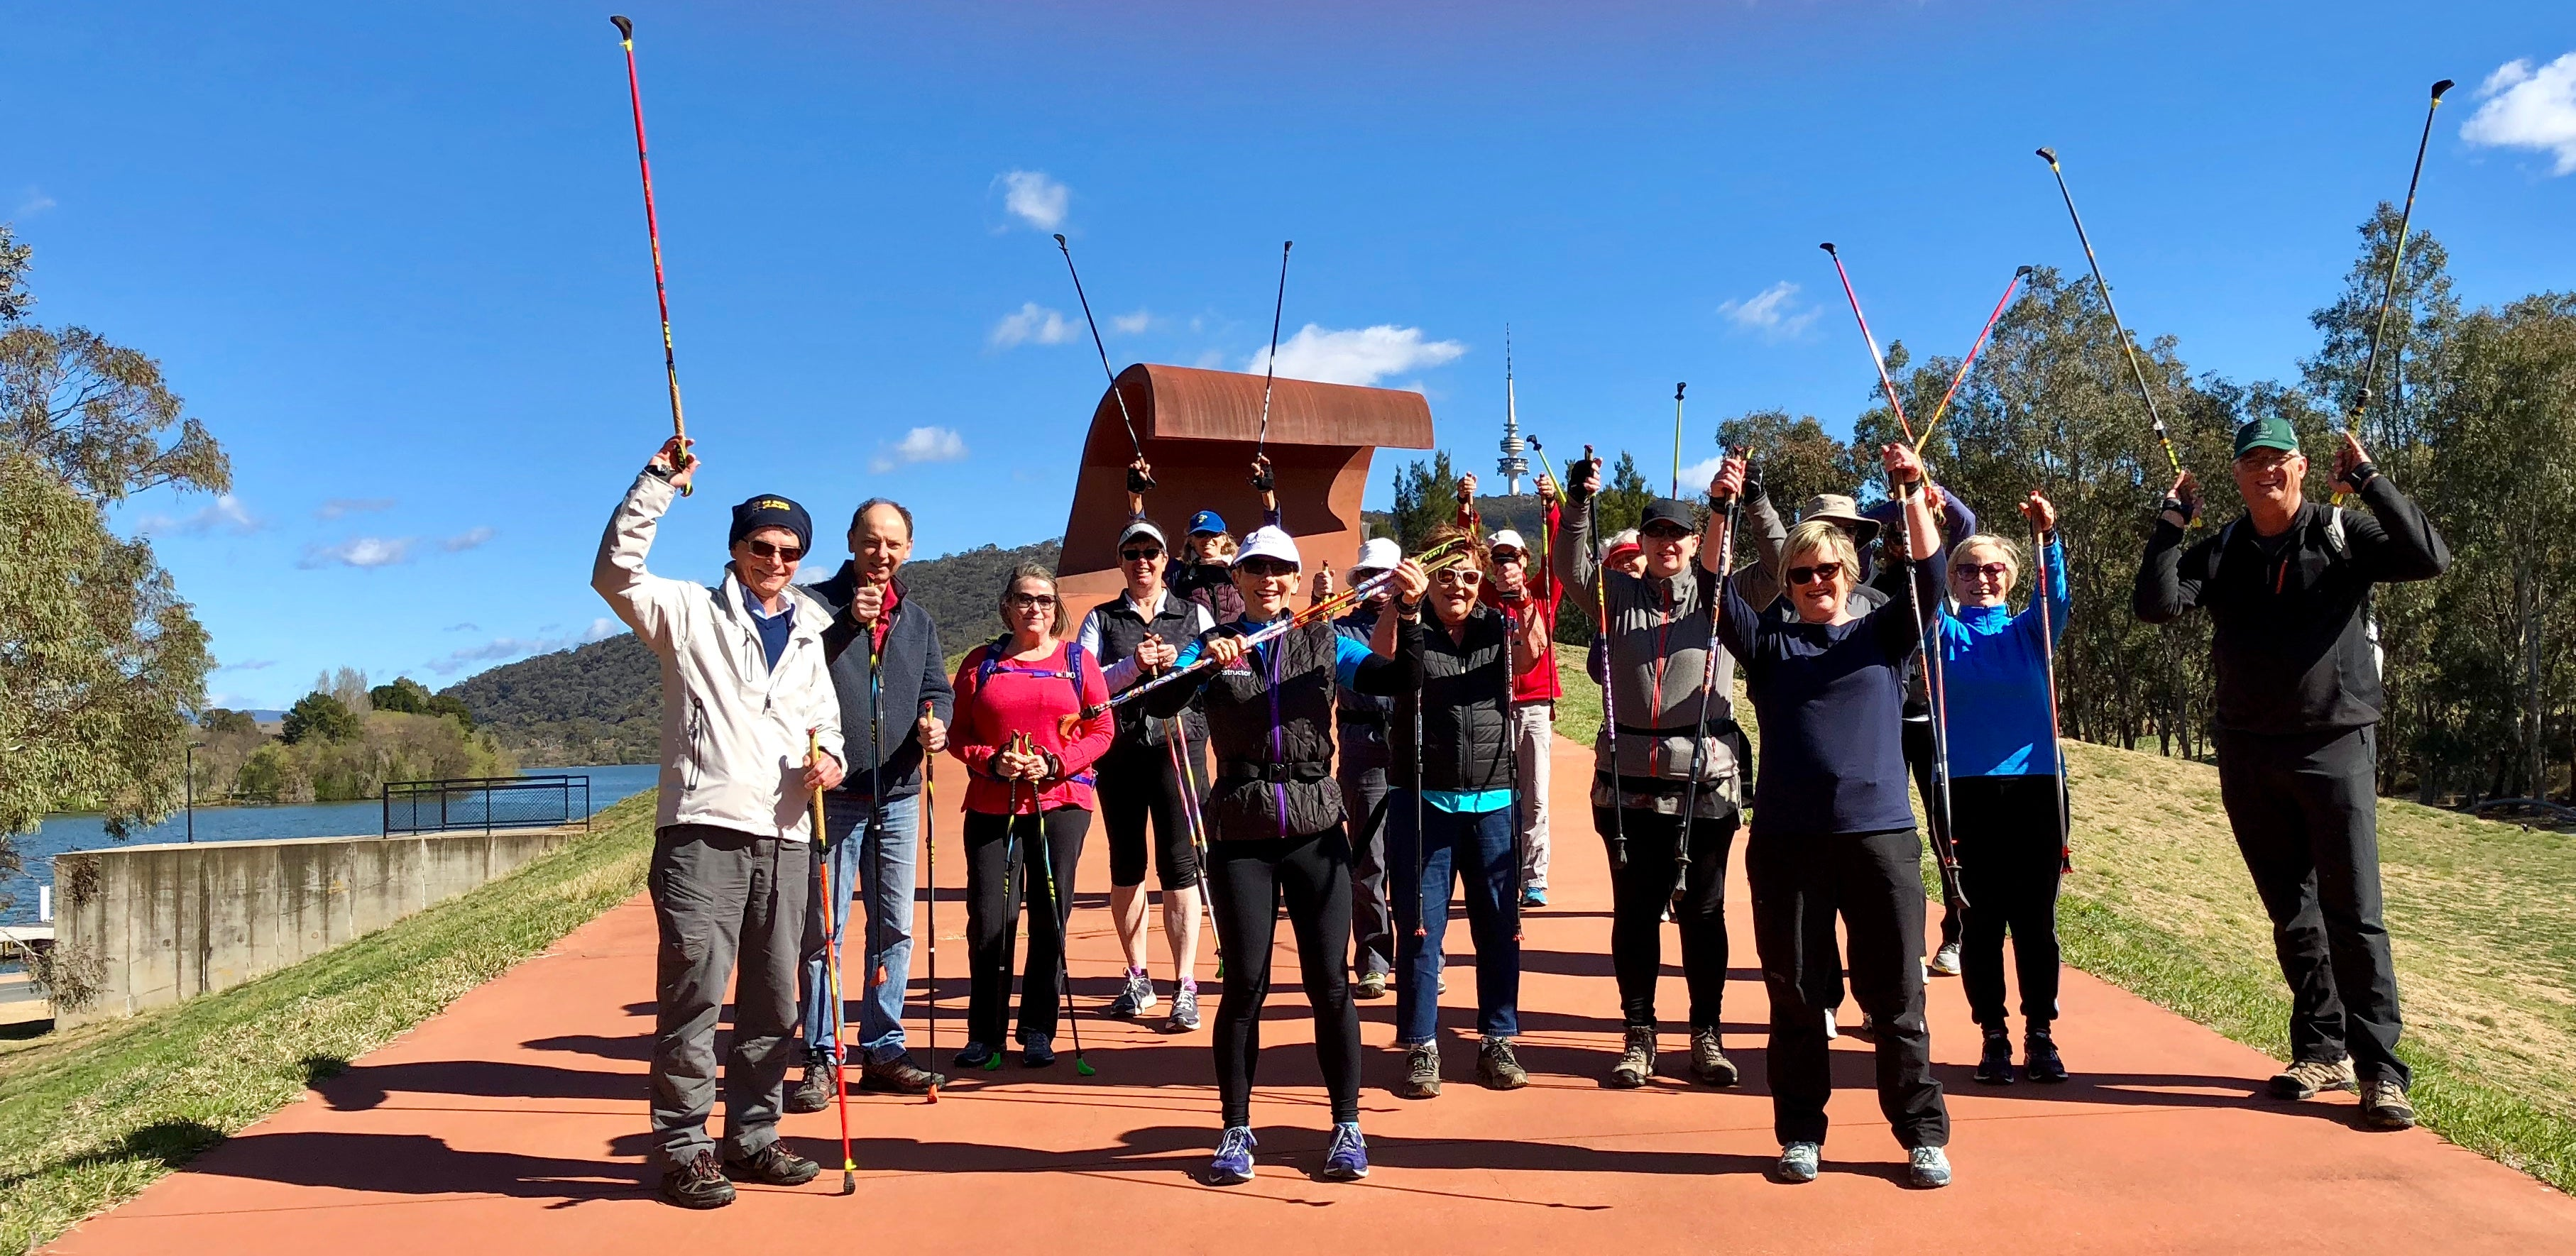 Nordic Walking Changes Lives!